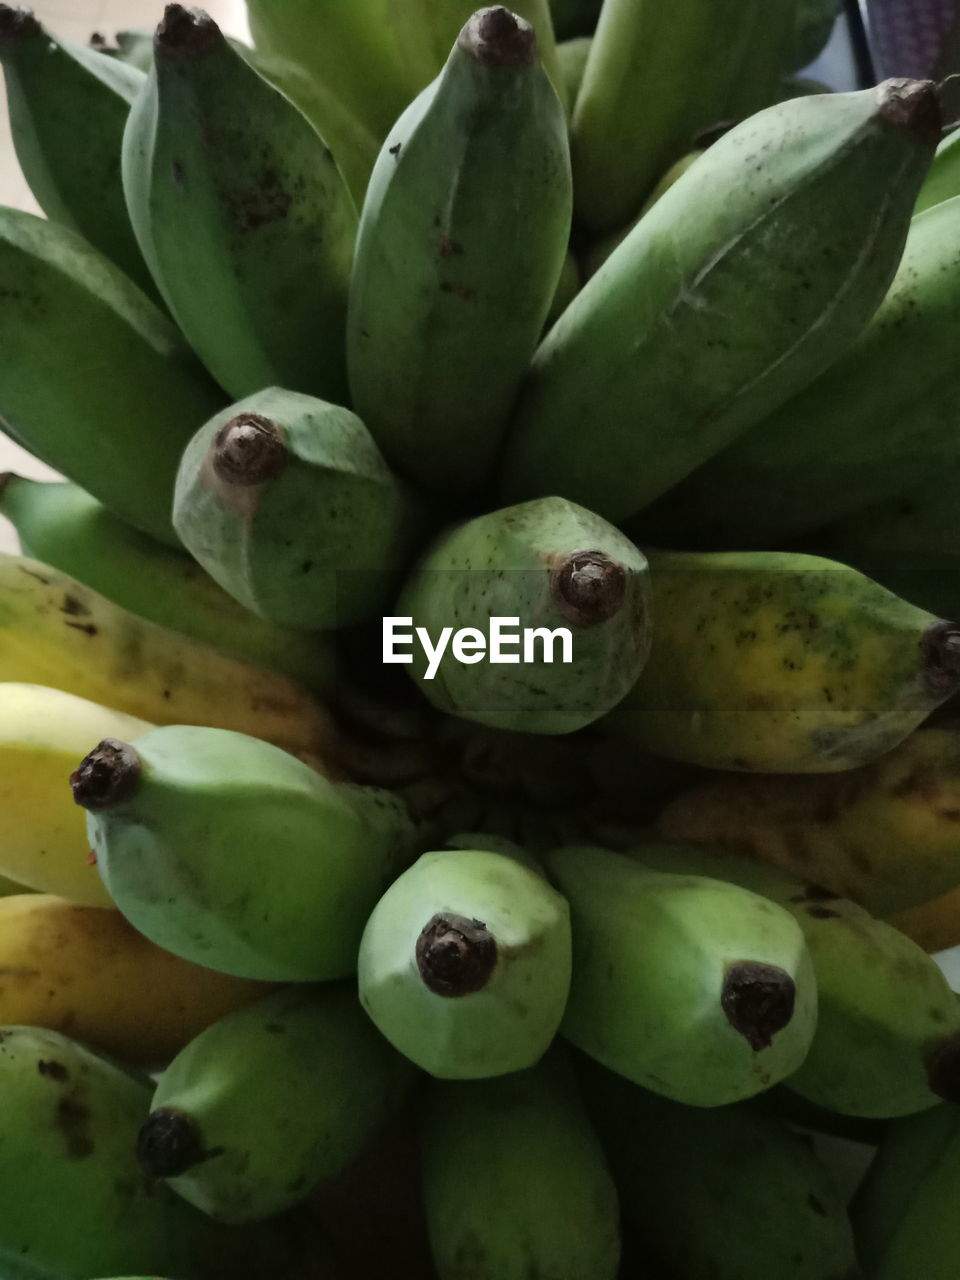 green color, fruit, healthy eating, food and drink, food, wellbeing, no people, backgrounds, full frame, freshness, close-up, cactus, banana, day, plant, large group of objects, succulent plant, tropical fruit, abundance, market, ripe